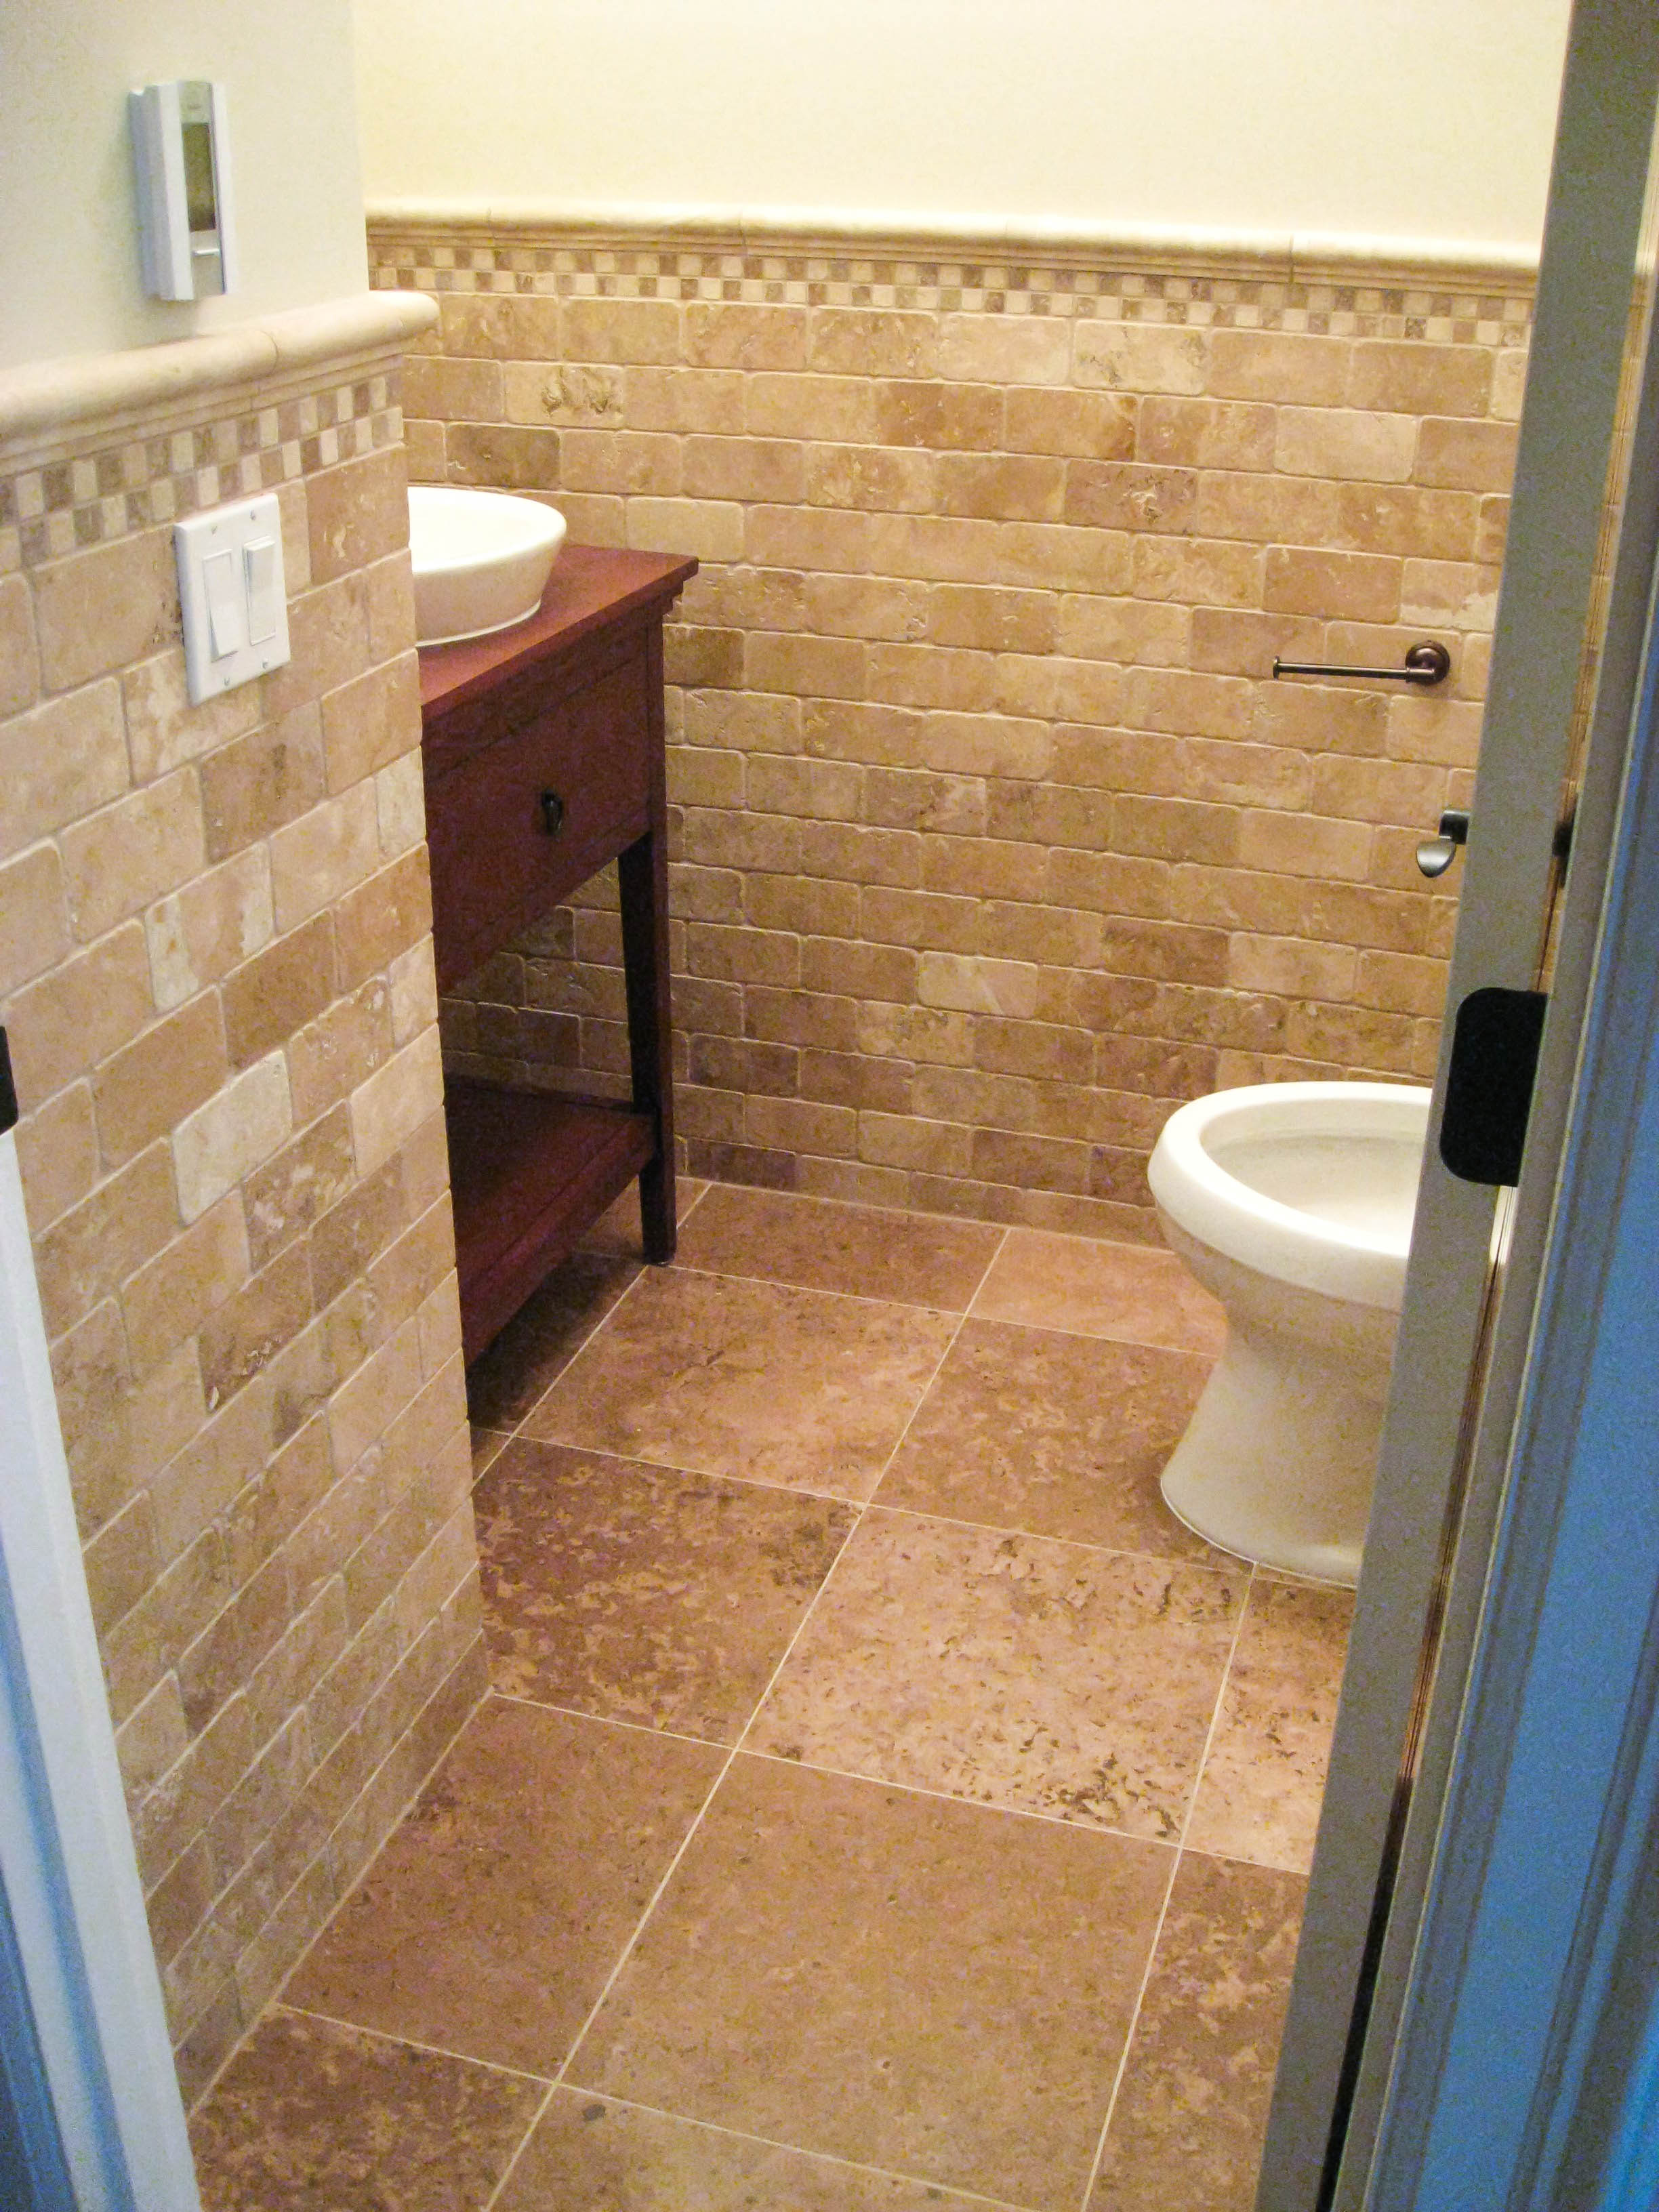 Bathroom Tile Gallery Bathroom Wainscoting Gallery Tile Contractor Irc Tiles Services